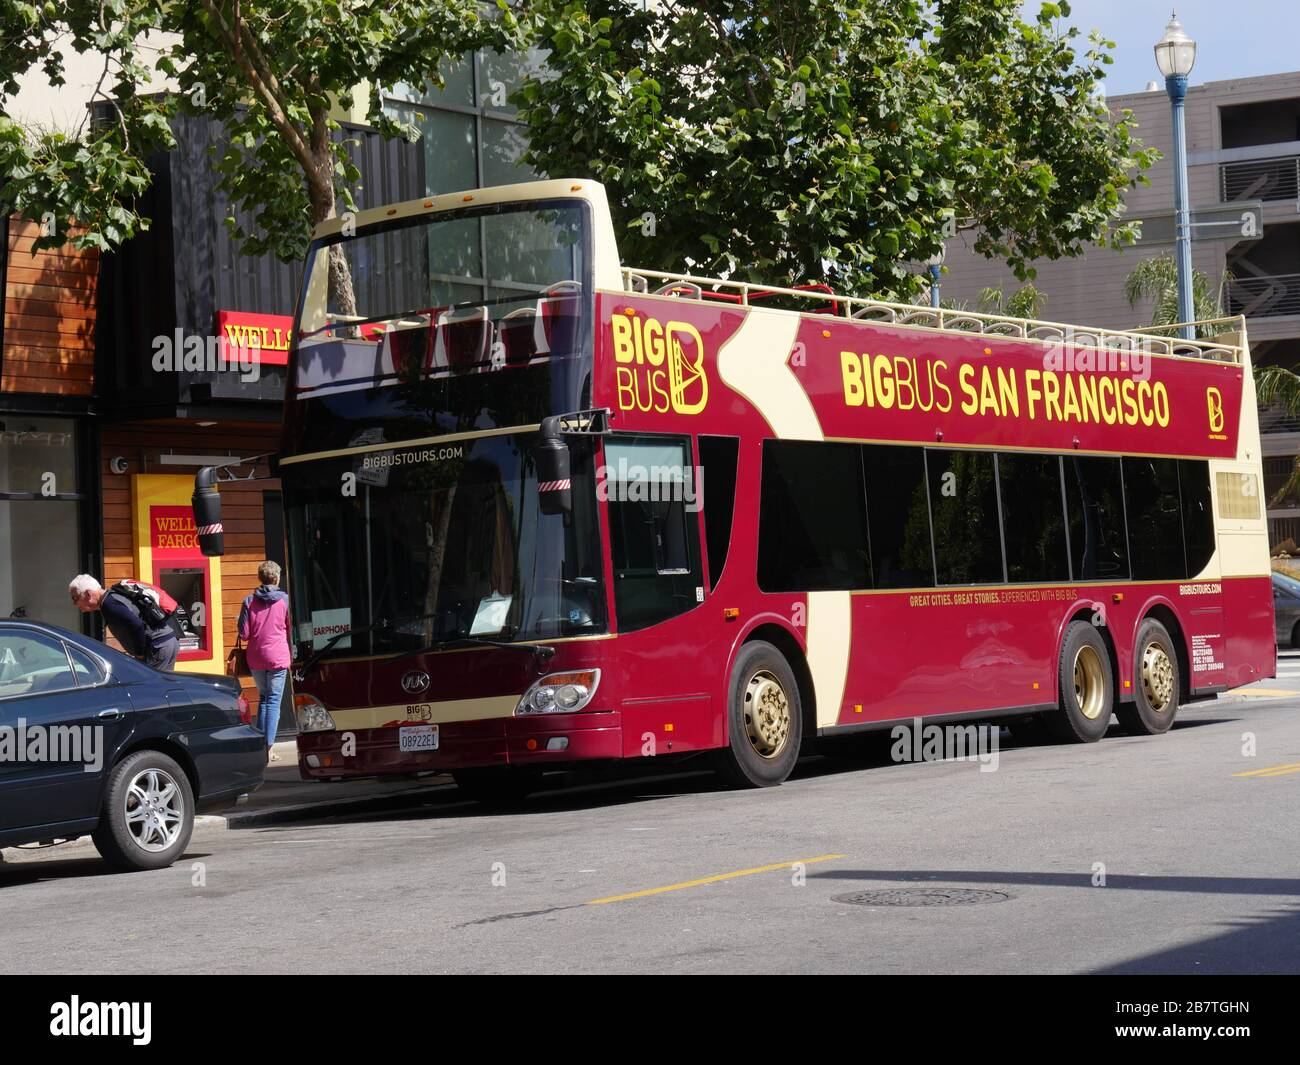 San Francisco California July 2018 A Big Bus Hop On Hop Off Tour Bus Parked On The Curb Waits To Load Tourists In San Francisco Stock Photo Alamy